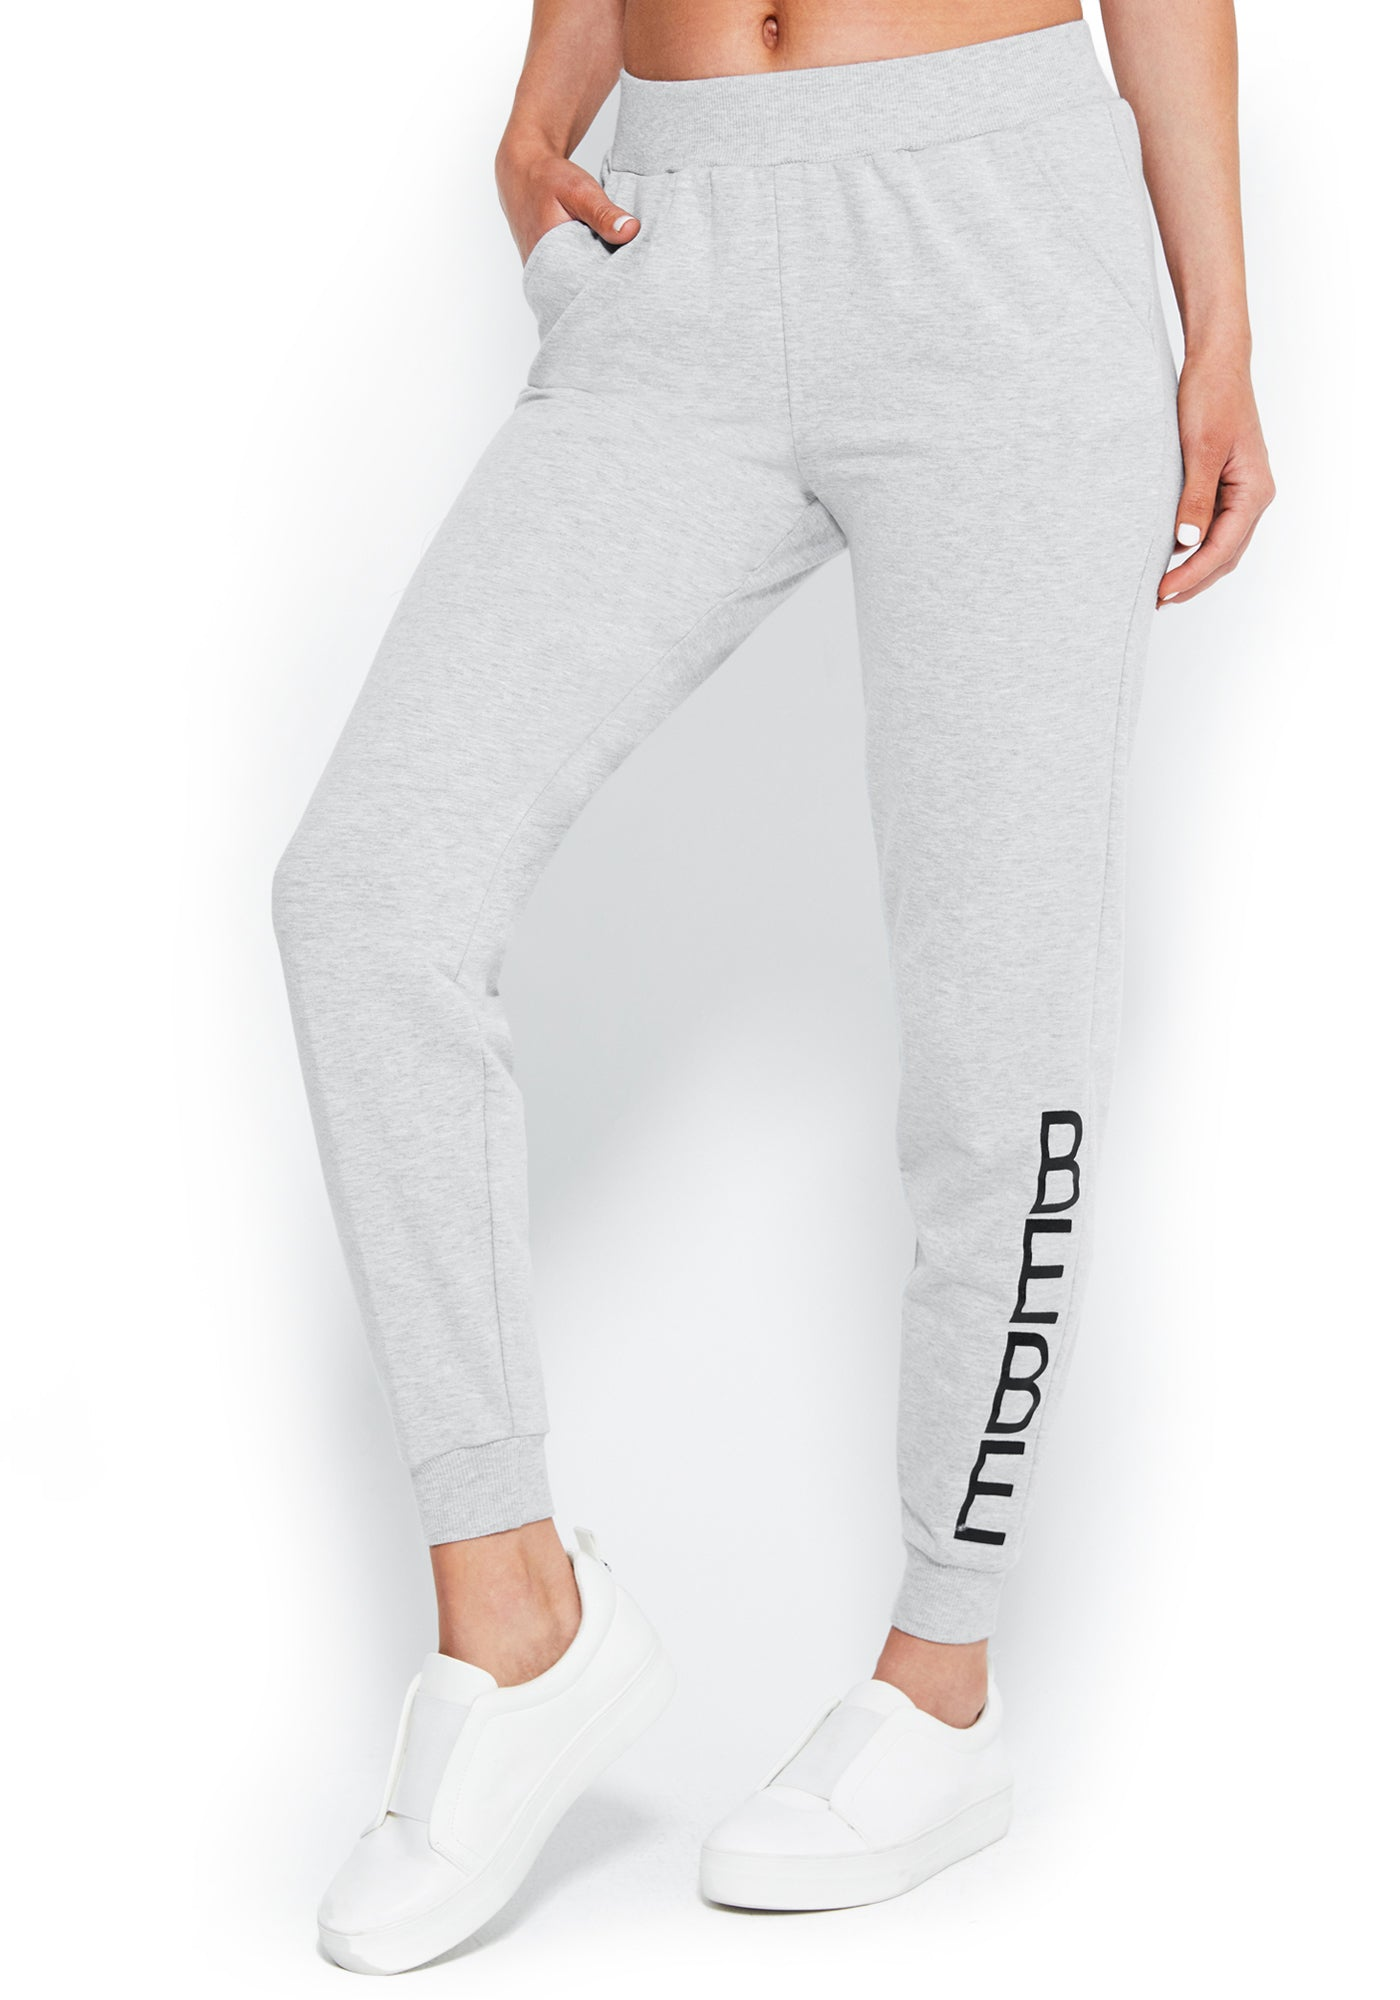 Women's Bebe Logo French Terry Pant, Size Small in GREY HEATHER Cotton/Spandex